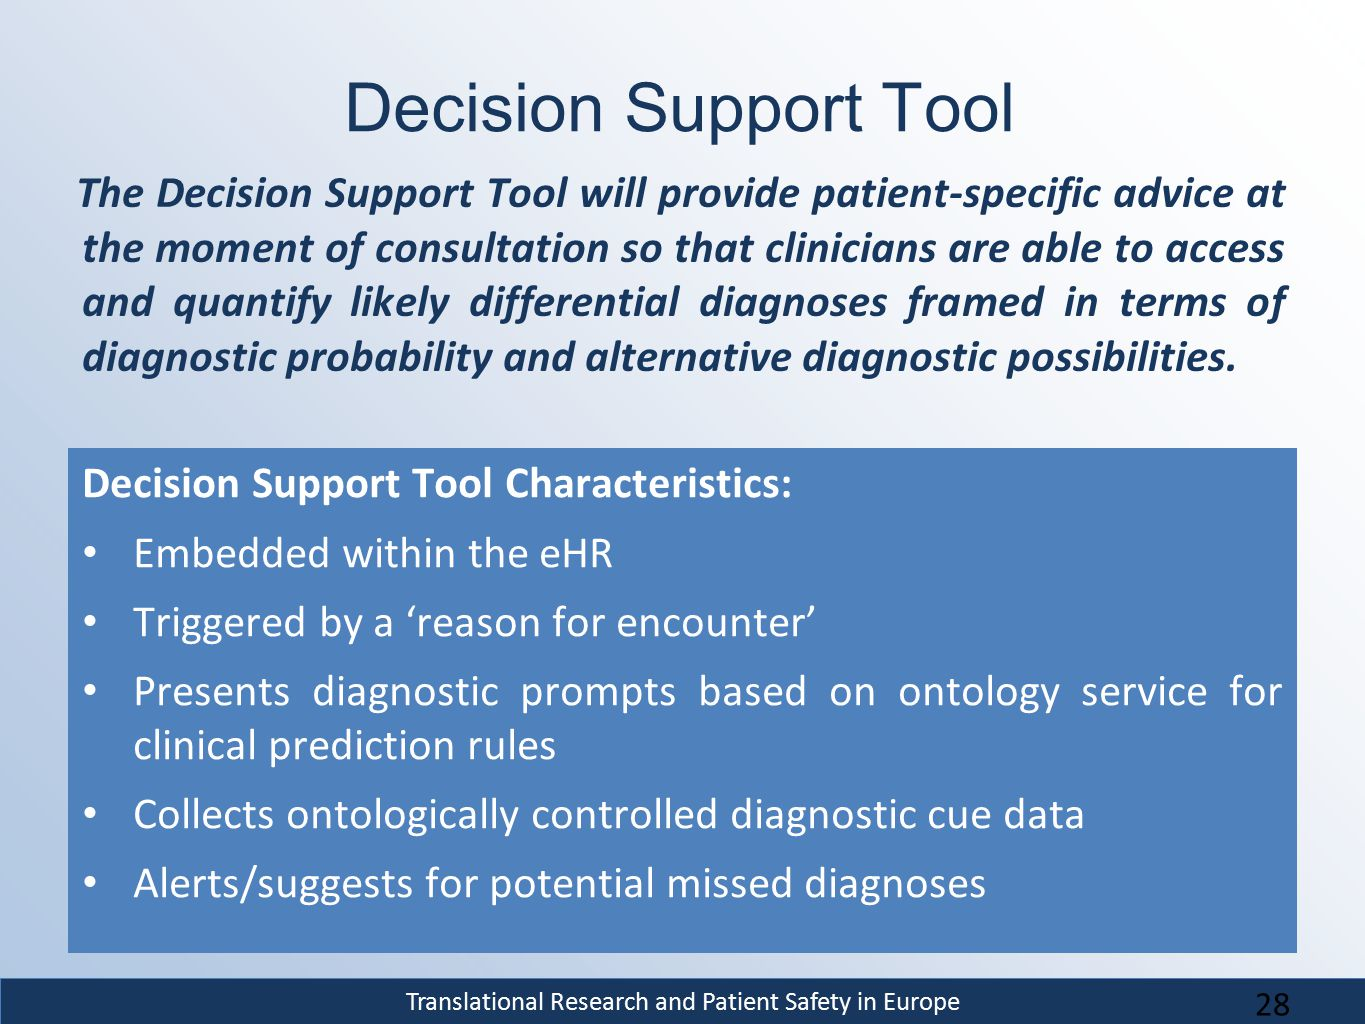 Translational Research and Patient Safety in Europe Decision Support Tool Decision Support Tool Characteristics: Embedded within the eHR Triggered by a 'reason for encounter' Presents diagnostic prompts based on ontology service for clinical prediction rules Collects ontologically controlled diagnostic cue data Alerts/suggests for potential missed diagnoses The Decision Support Tool will provide patient-specific advice at the moment of consultation so that clinicians are able to access and quantify likely differential diagnoses framed in terms of diagnostic probability and alternative diagnostic possibilities.